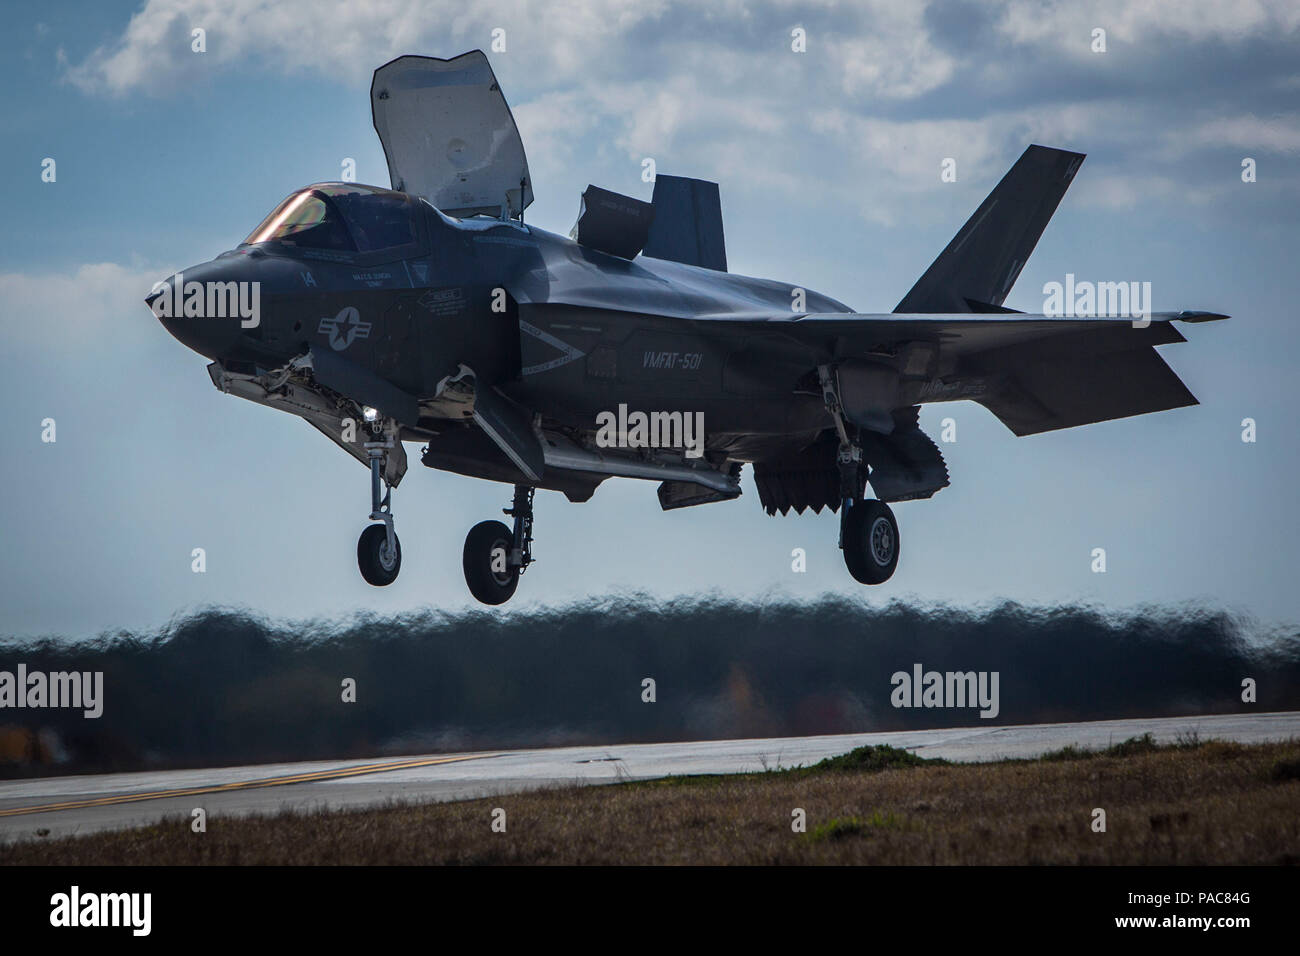 An F-35B Lightning II performs a vertical landing aboard Marine Corps Air Station Beaufort. The F-35B is the short takeoff and vertical landing variant of the jet which uses a jet propulsion system to execute the landing. The aircraft is with Marine Fighter Attack Training Squadron 501. - Stock Image